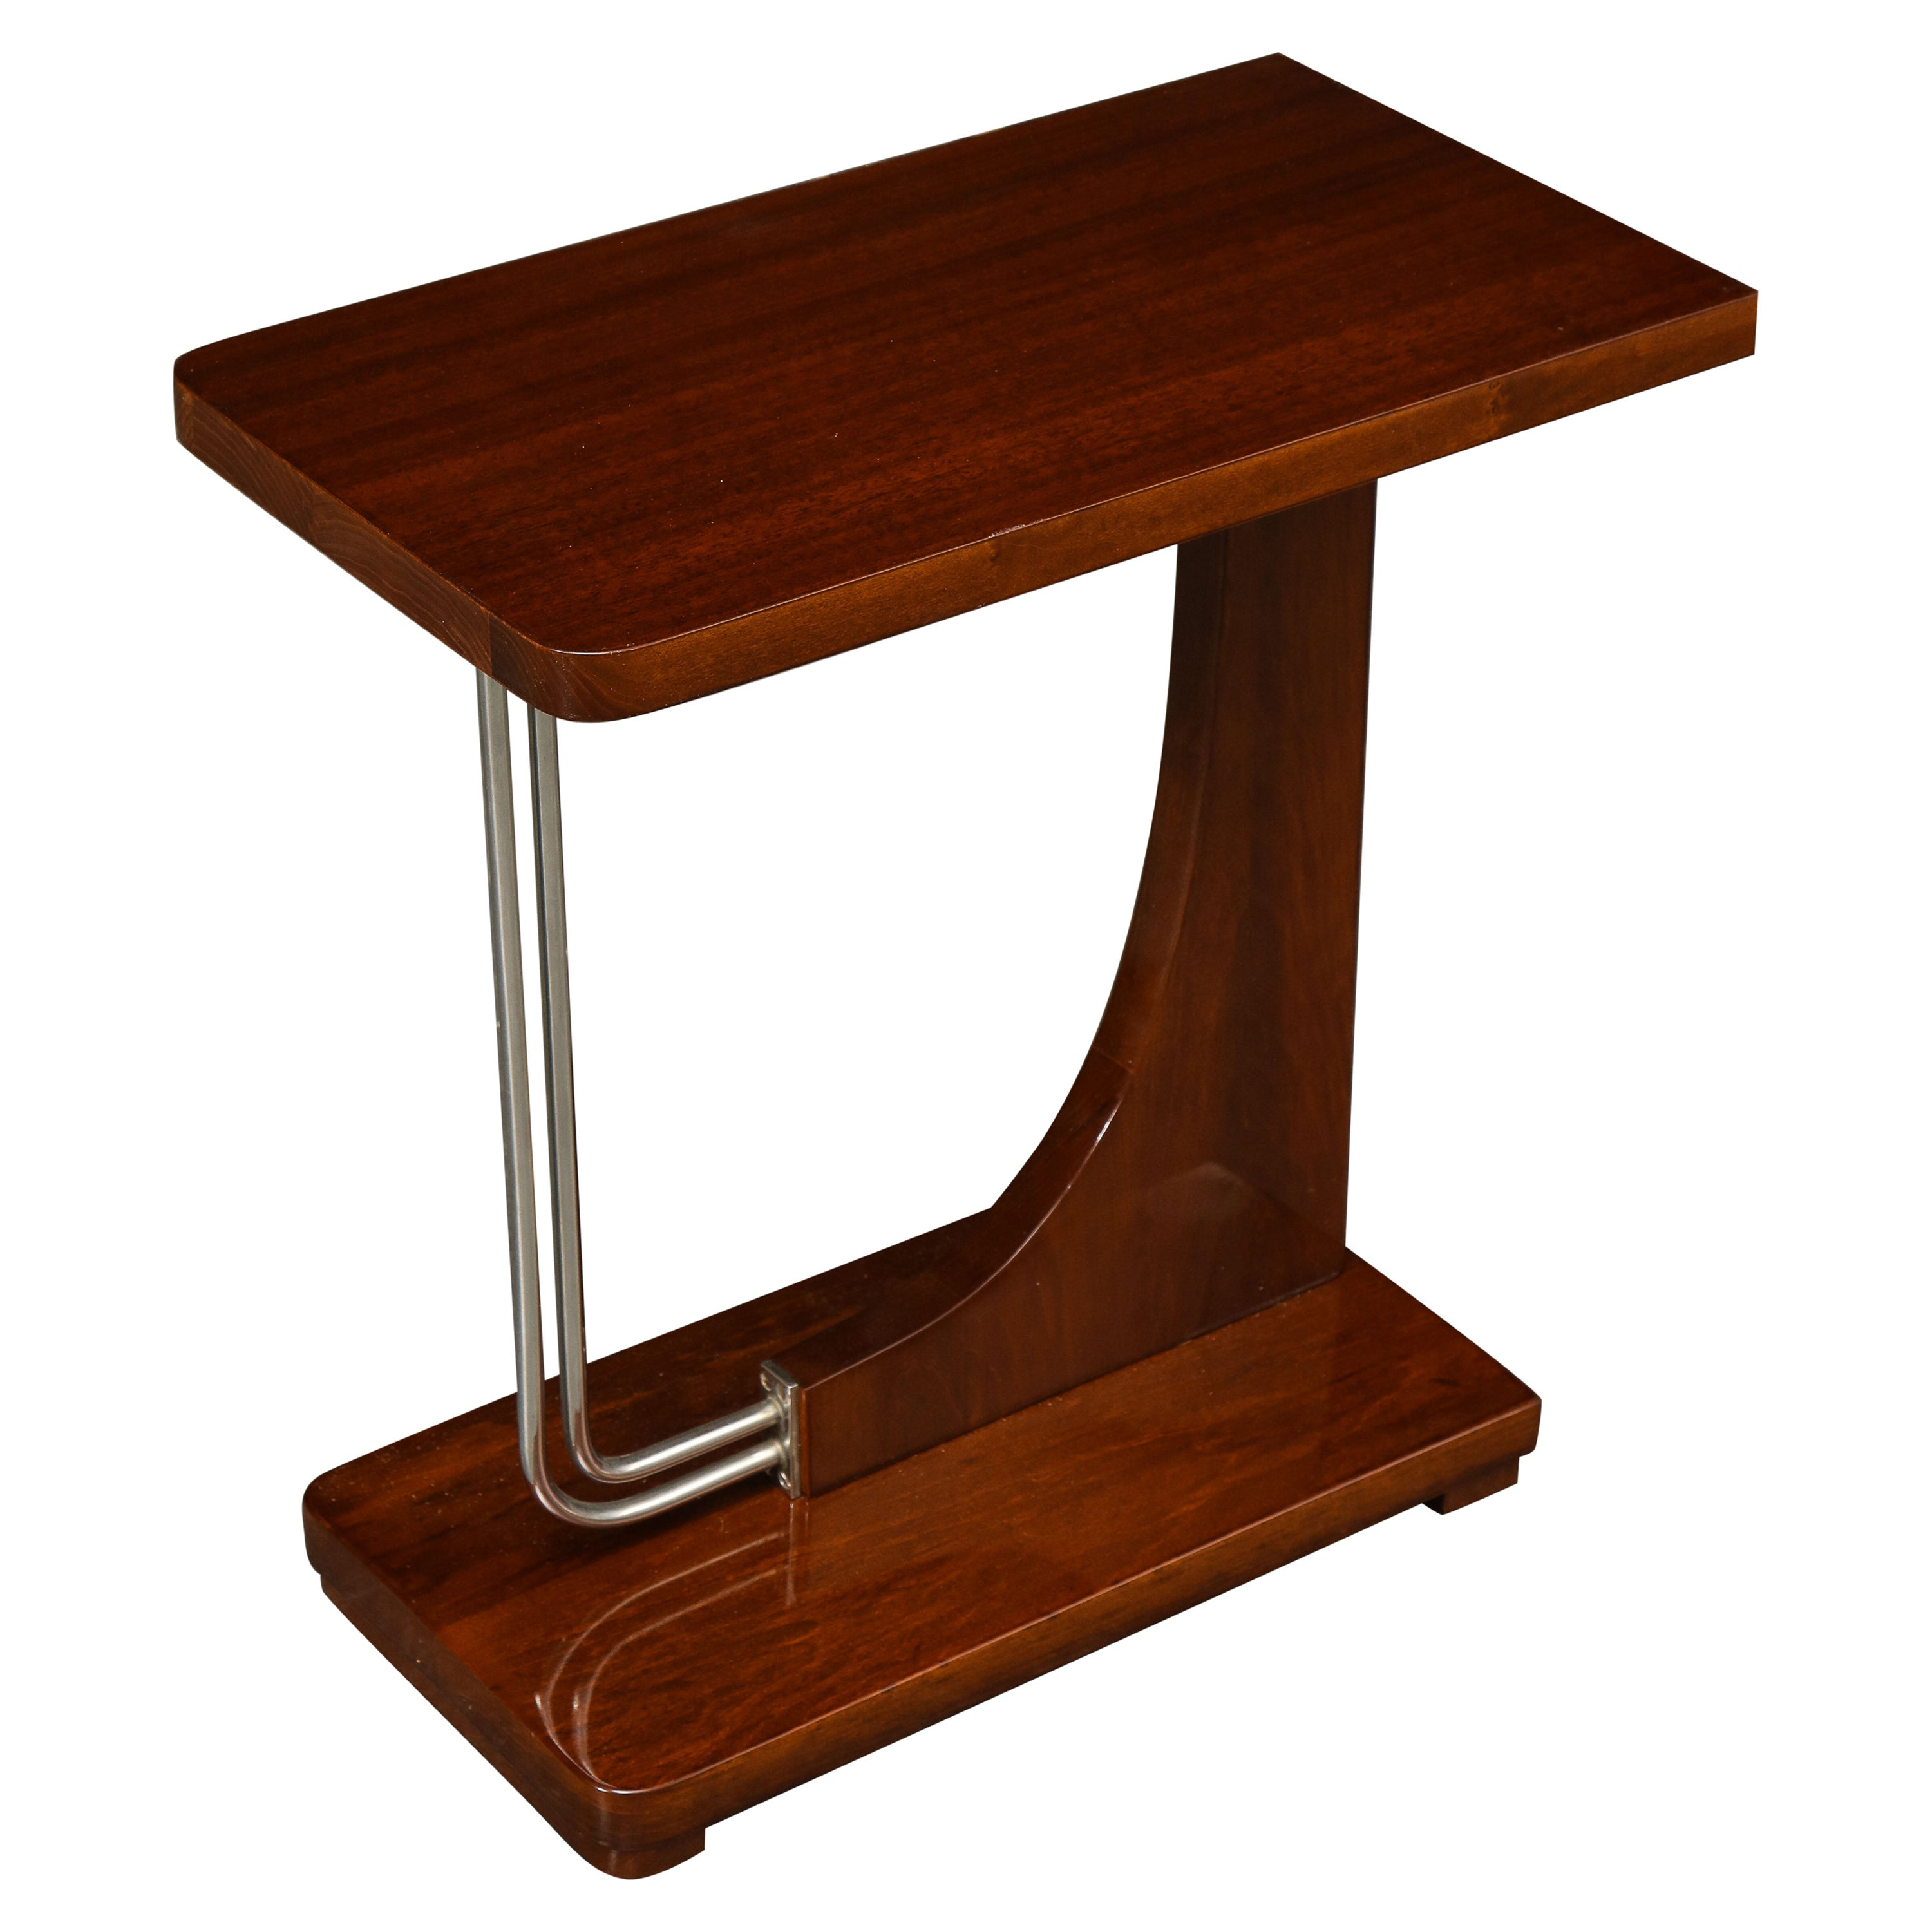 Mid-Century Modern Mahogany and Chrome Side Table